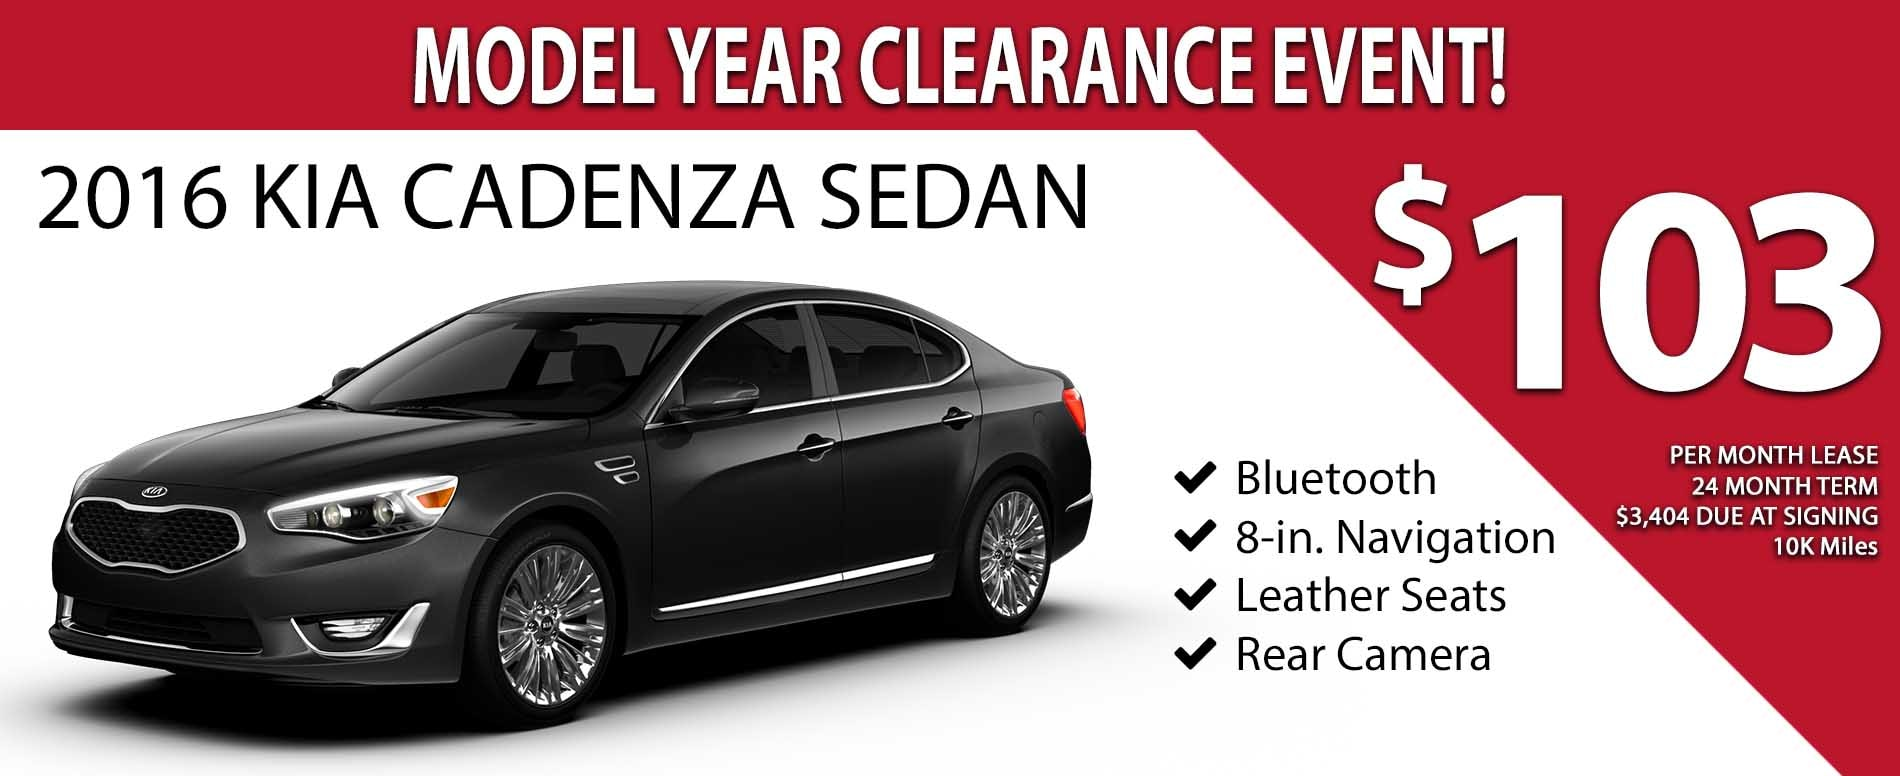 2016 Model Year Clearance Event - Lease a 2016 Kia Cadenza for only $103 per month! - Exp. 02/28/2017